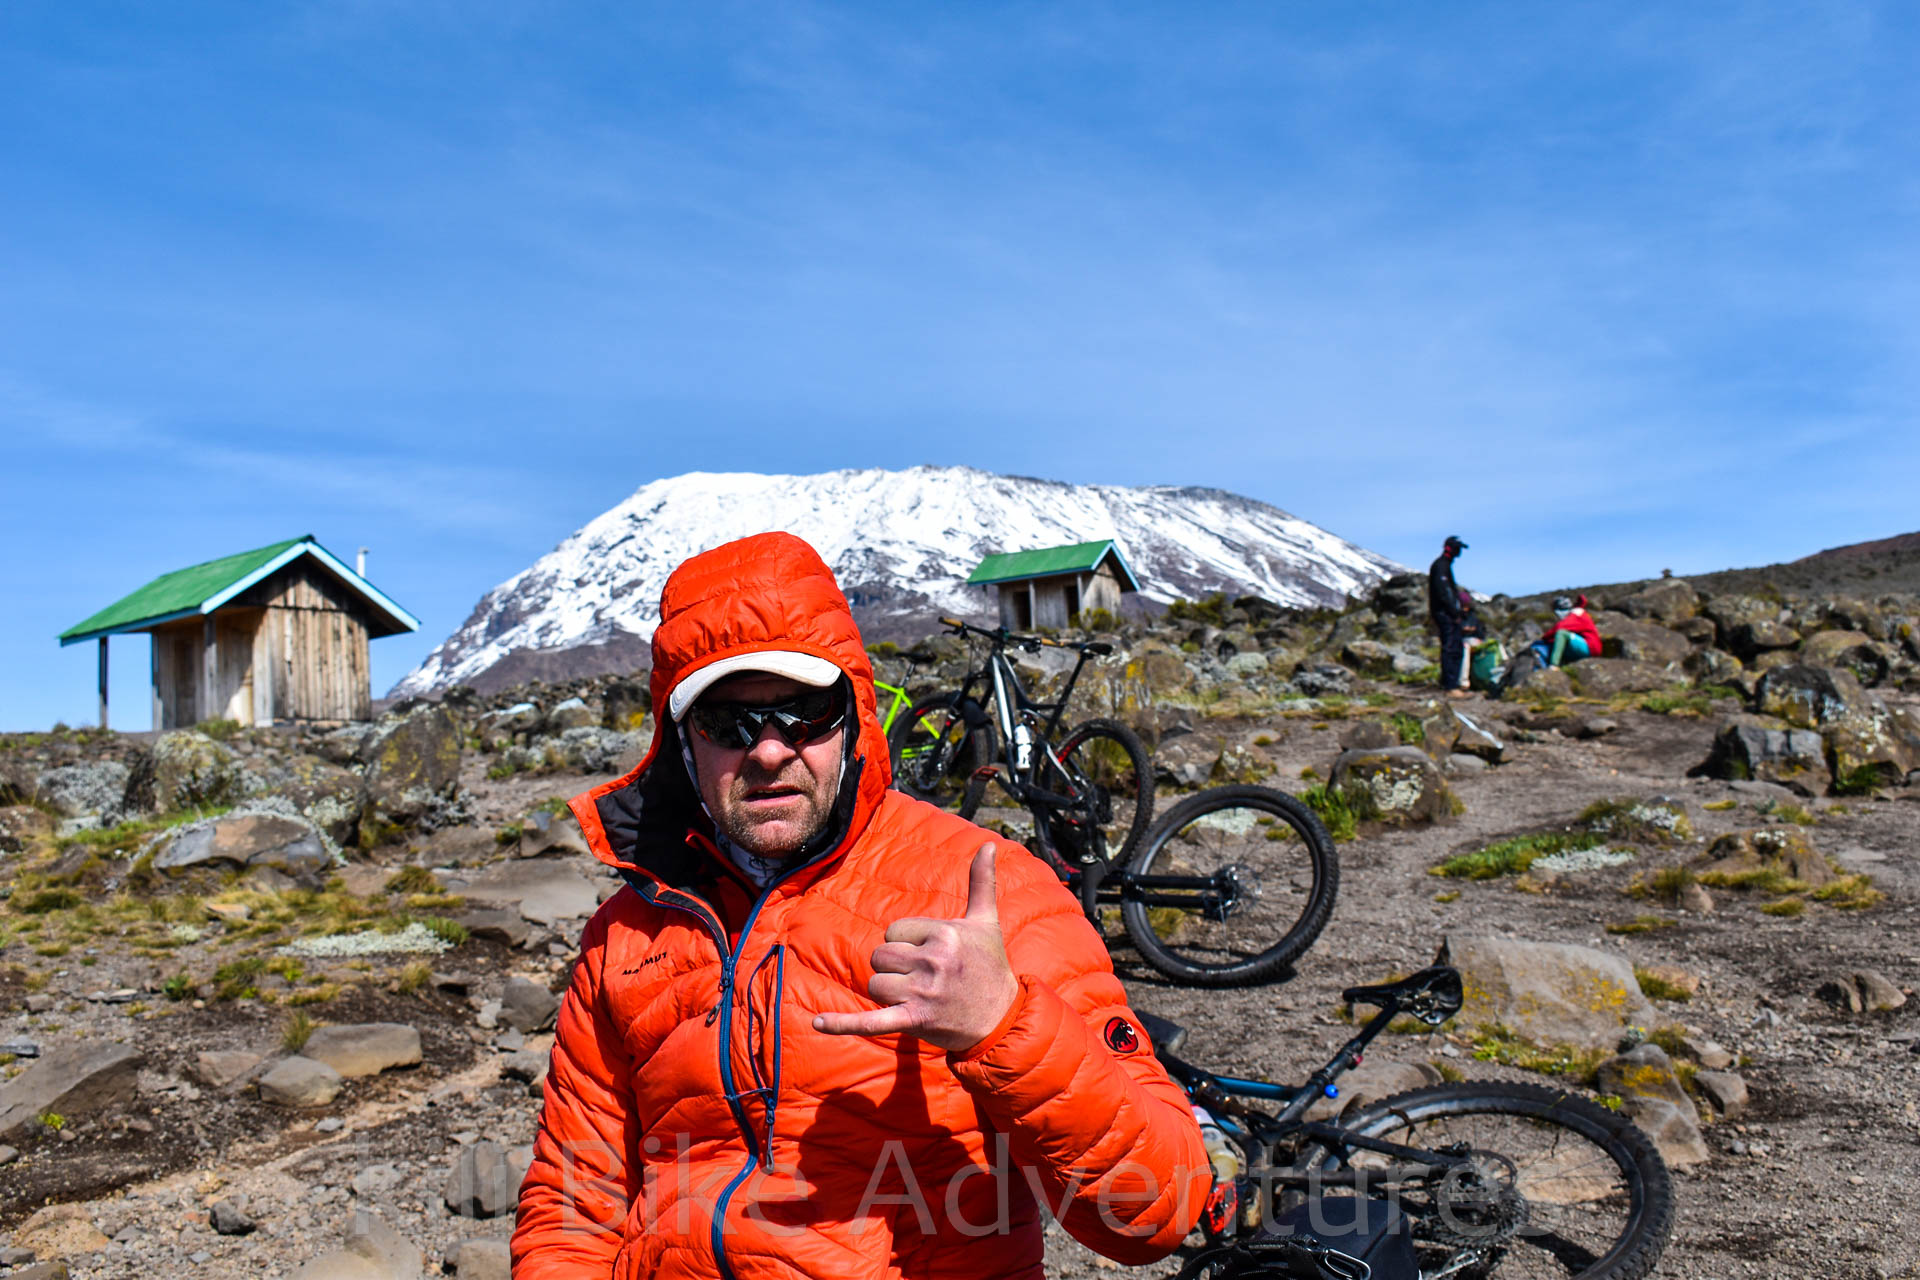 Kilimanjaro-bike-and-cycling-tour (40)